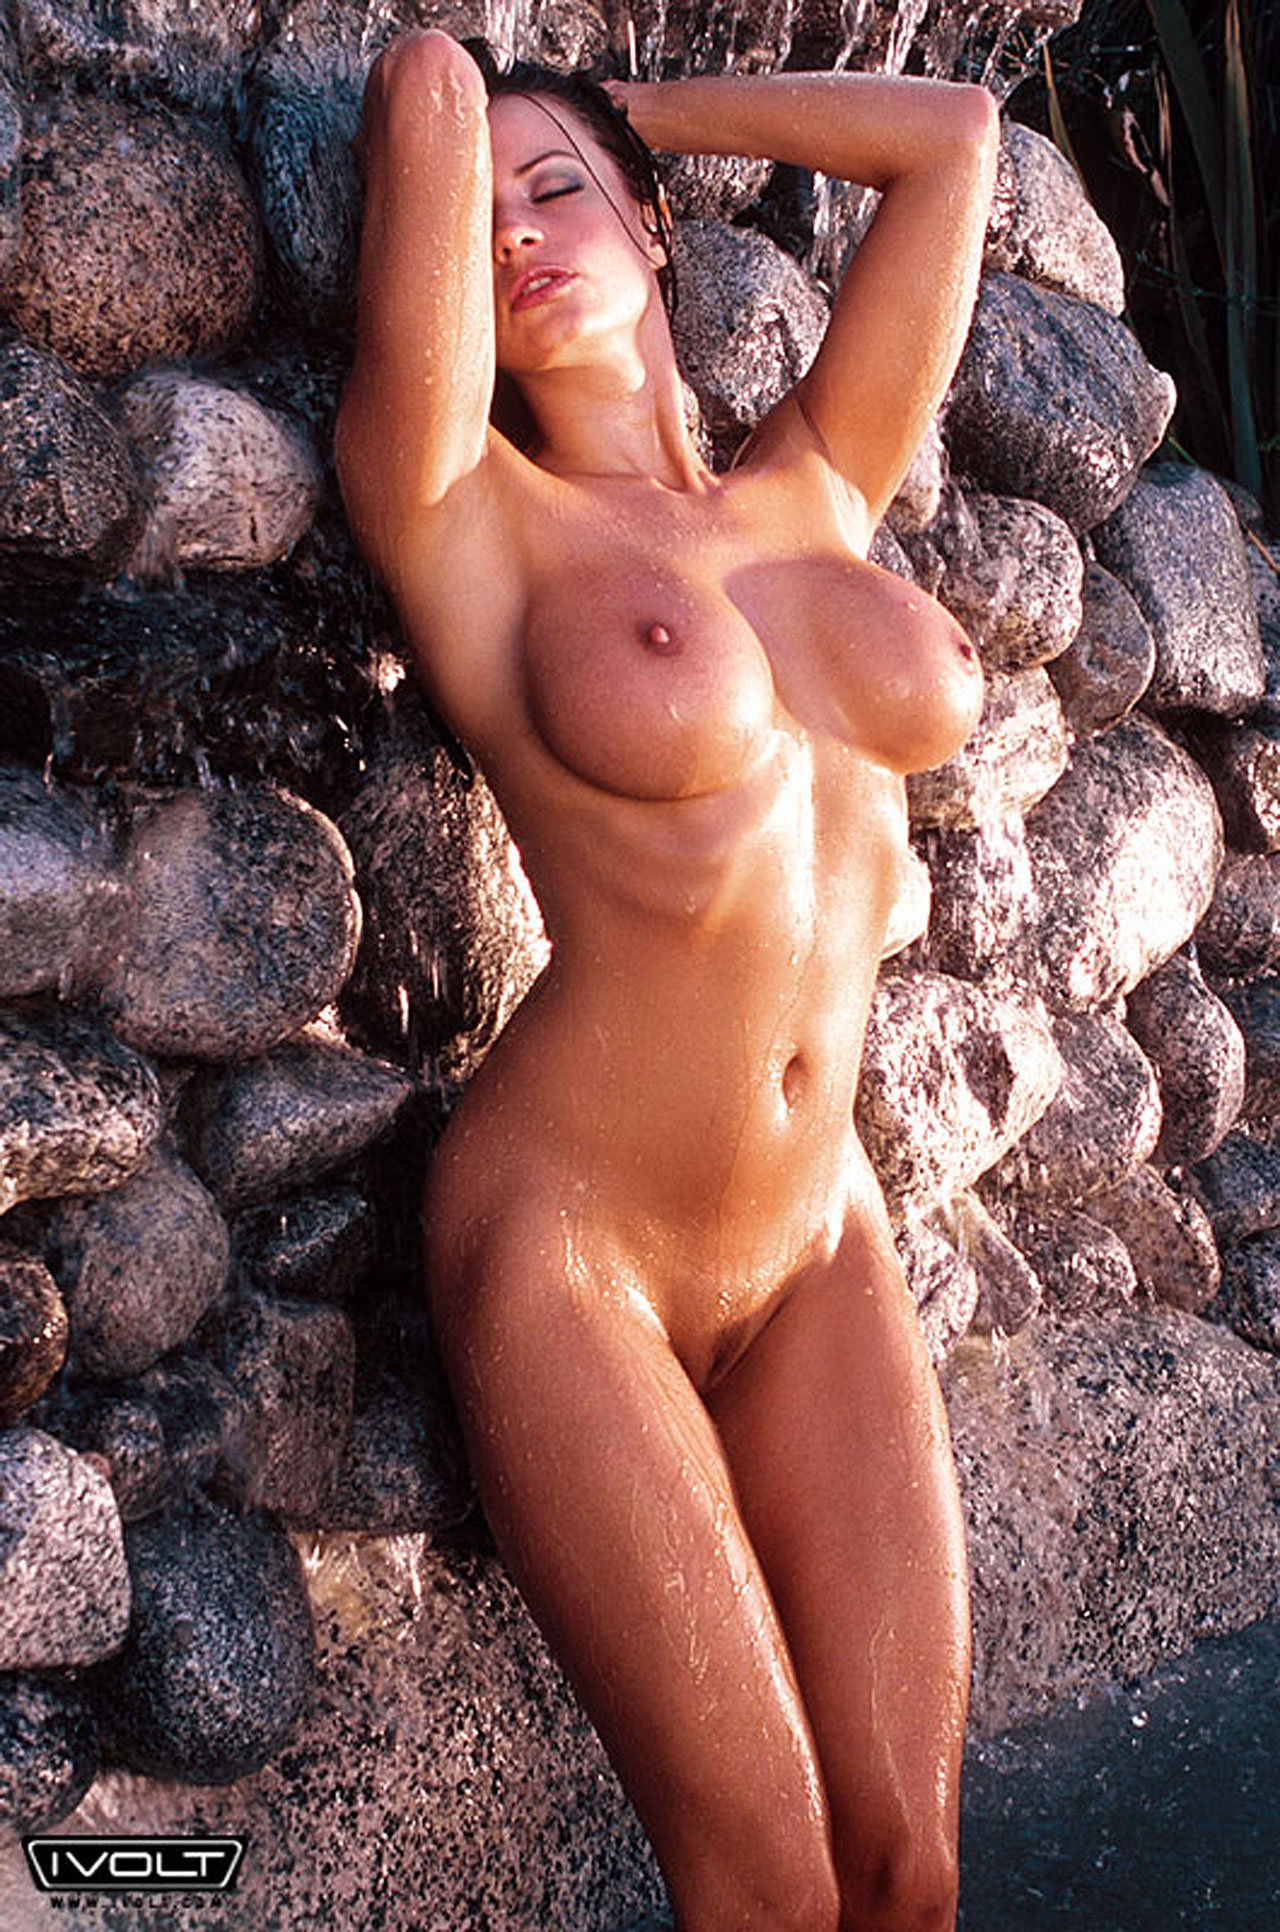 candice michelle naked threads